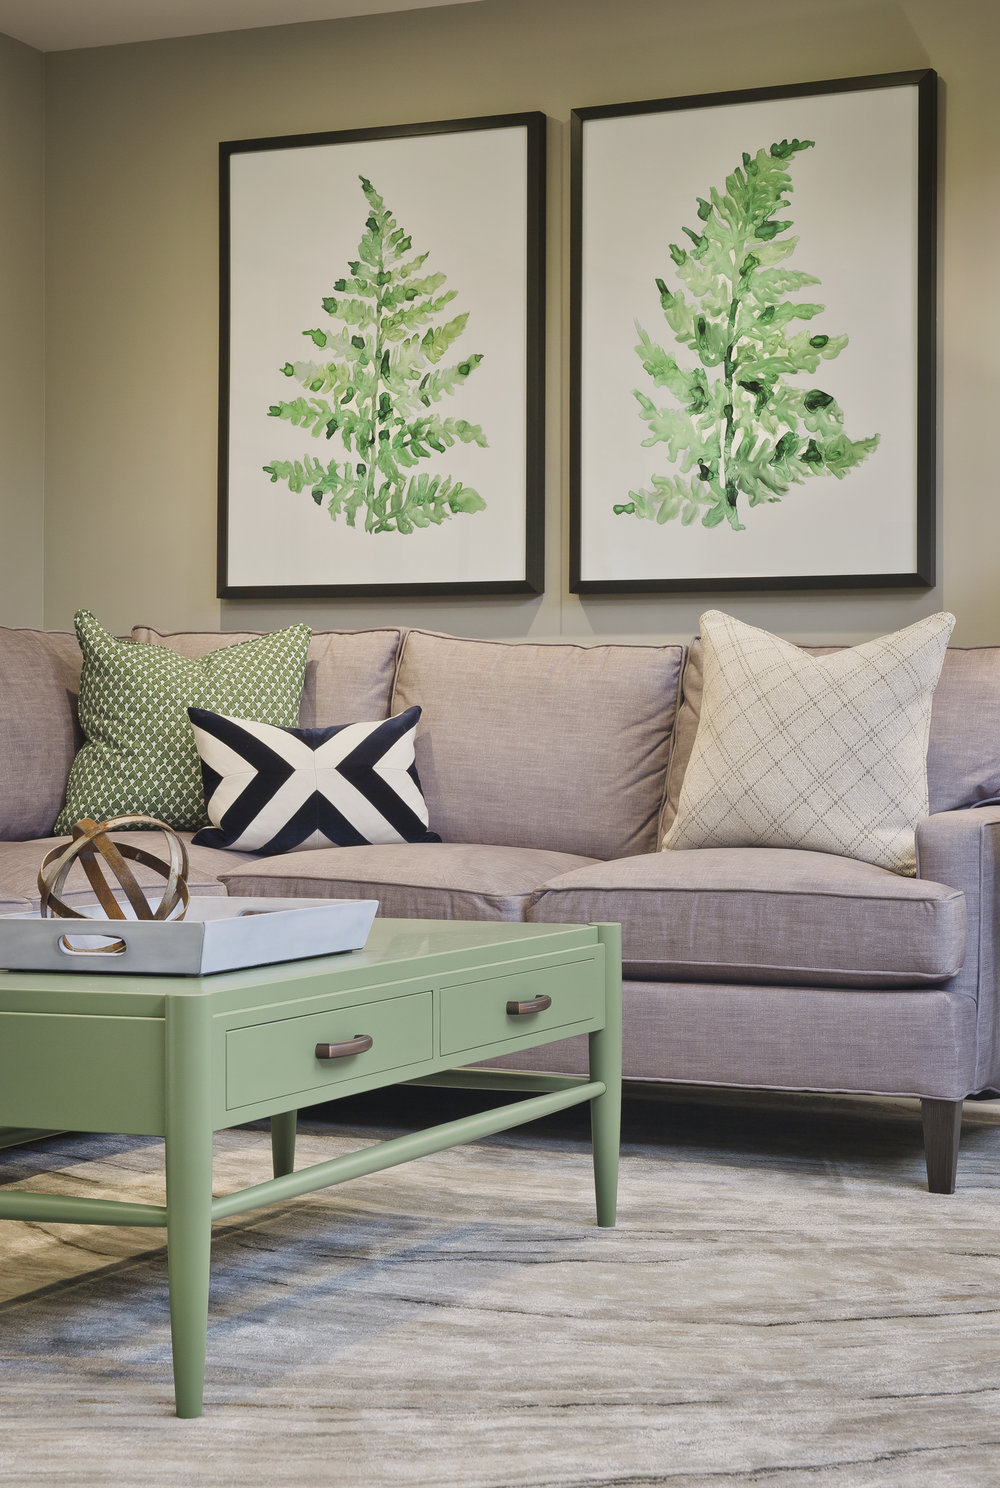 {What's your favorite piece in the finished space? We're torn between the custom-made coffee table and the oversized fern leaf prints.}